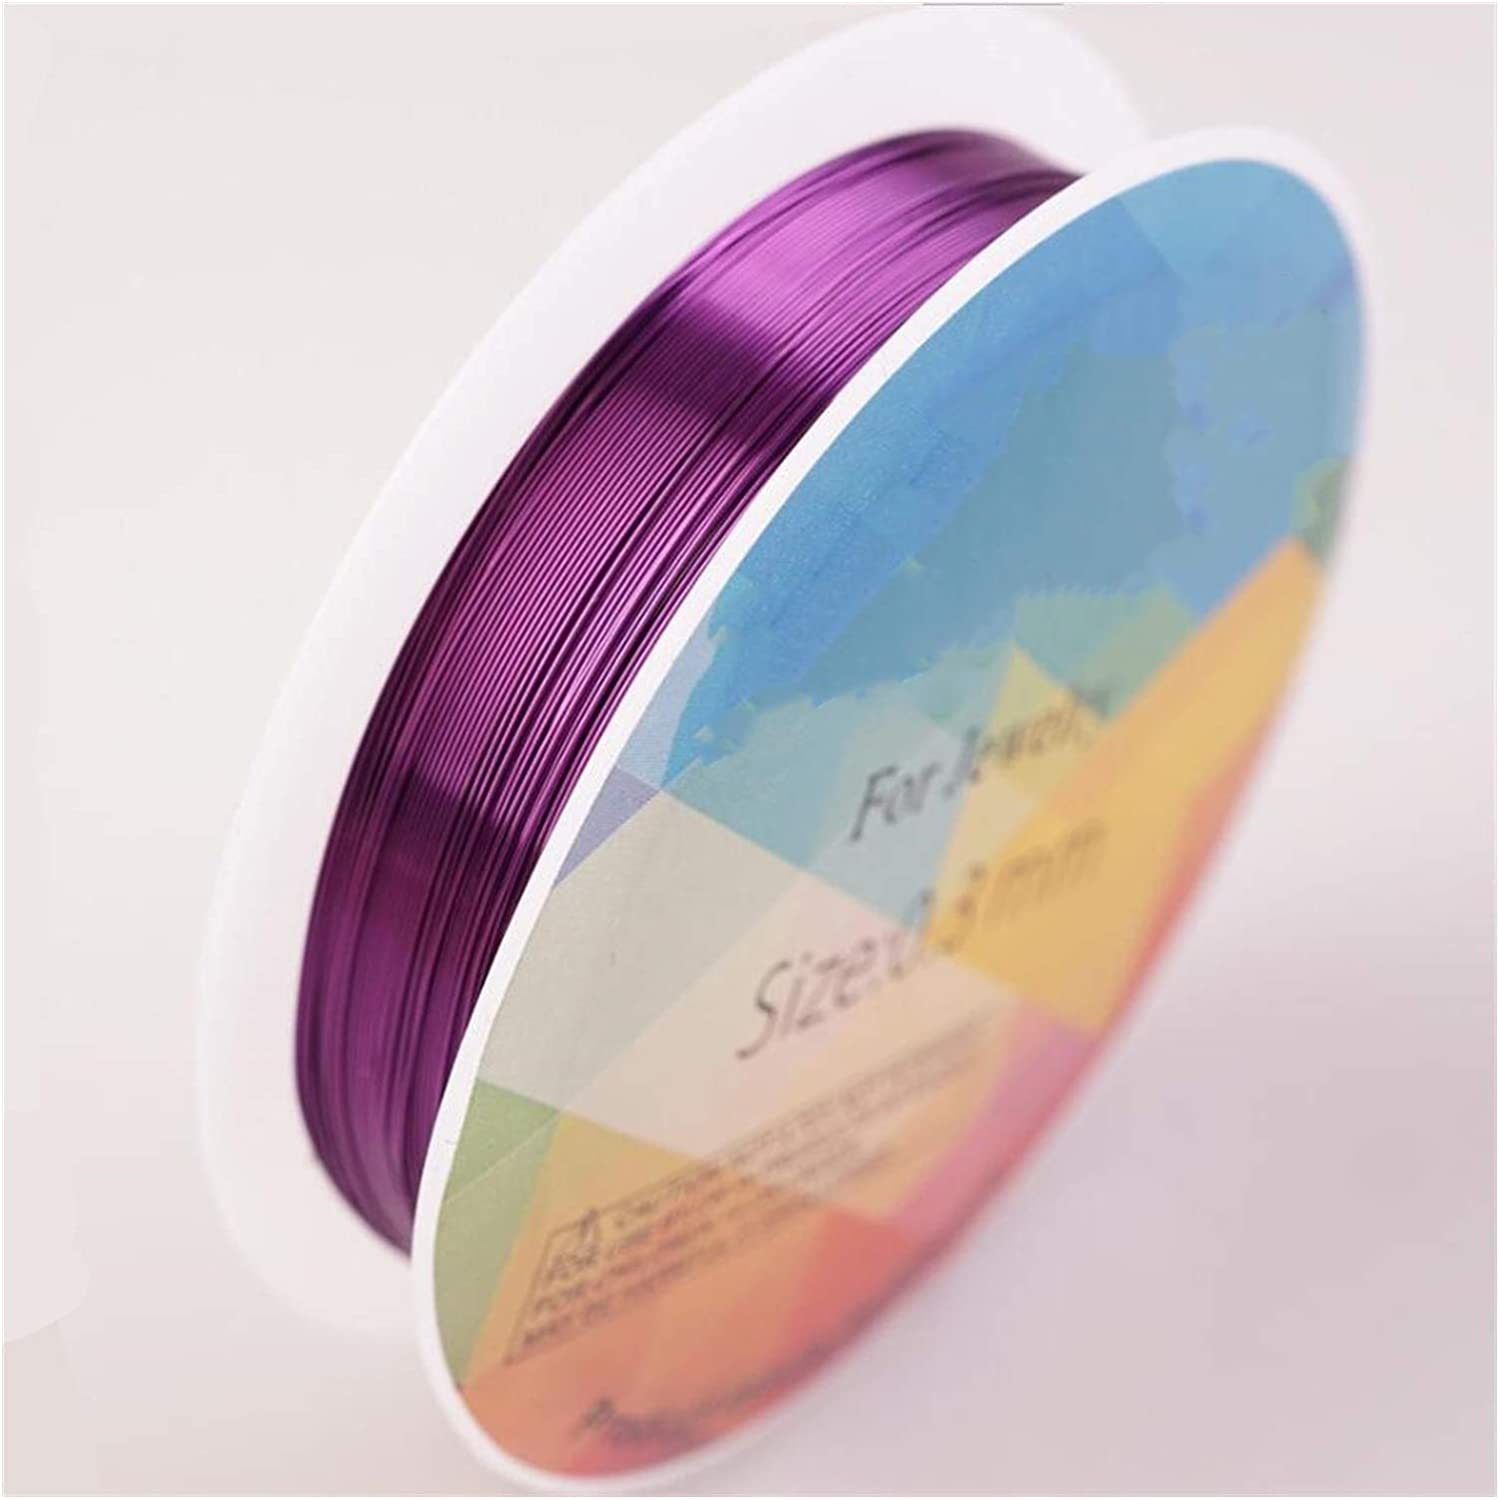 CHUNMA Colorfast Copper Wire for Bracelet DIY A Necklace SALENEW very Max 47% OFF popular Jewelry